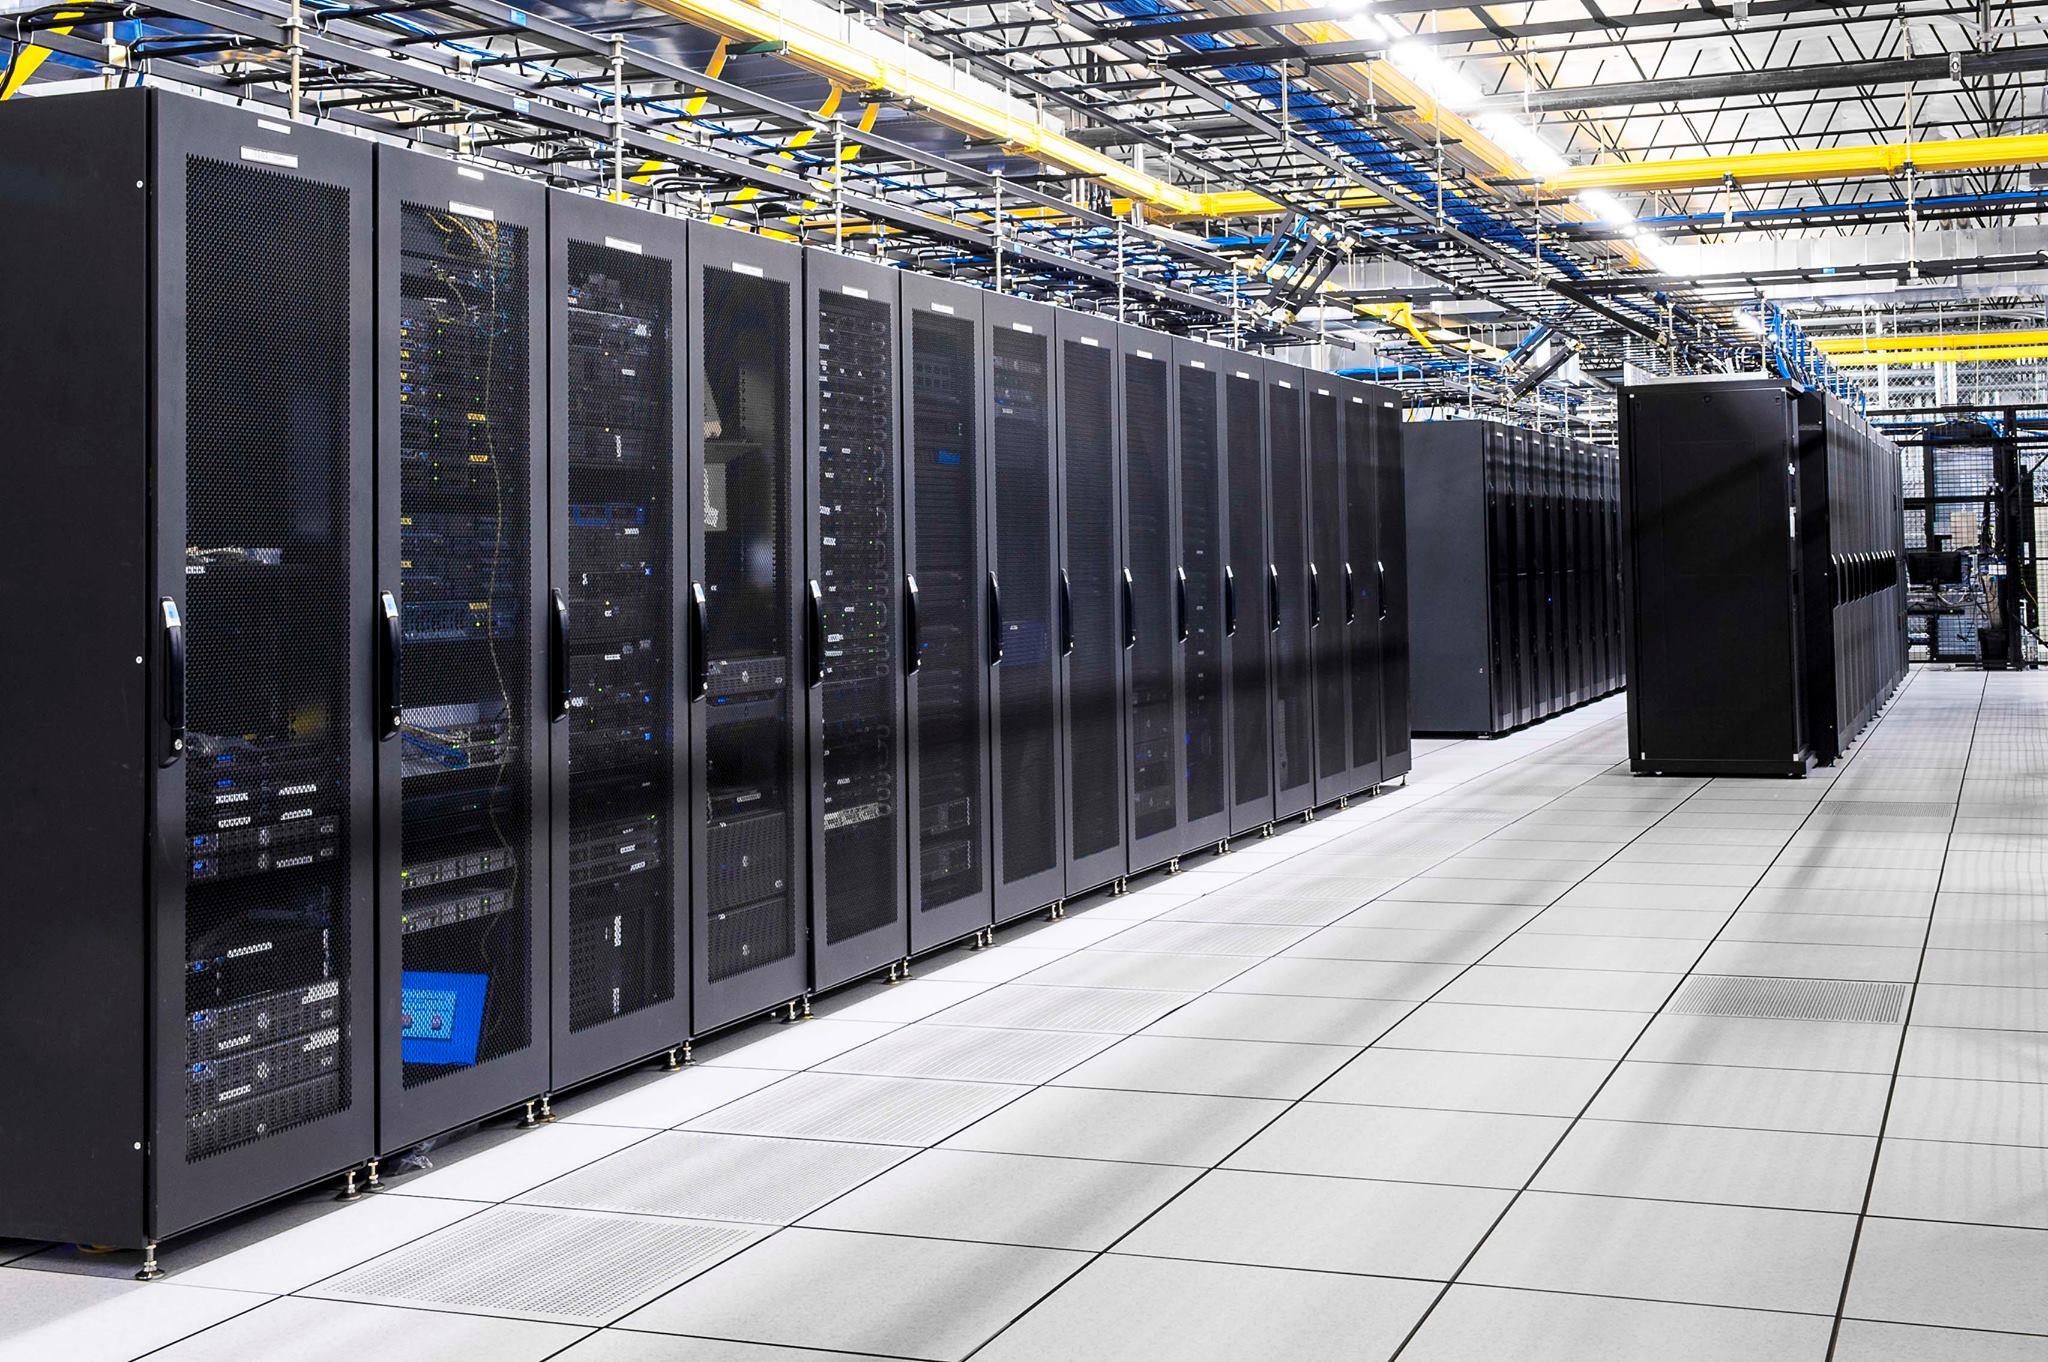 dallas_datacenter2